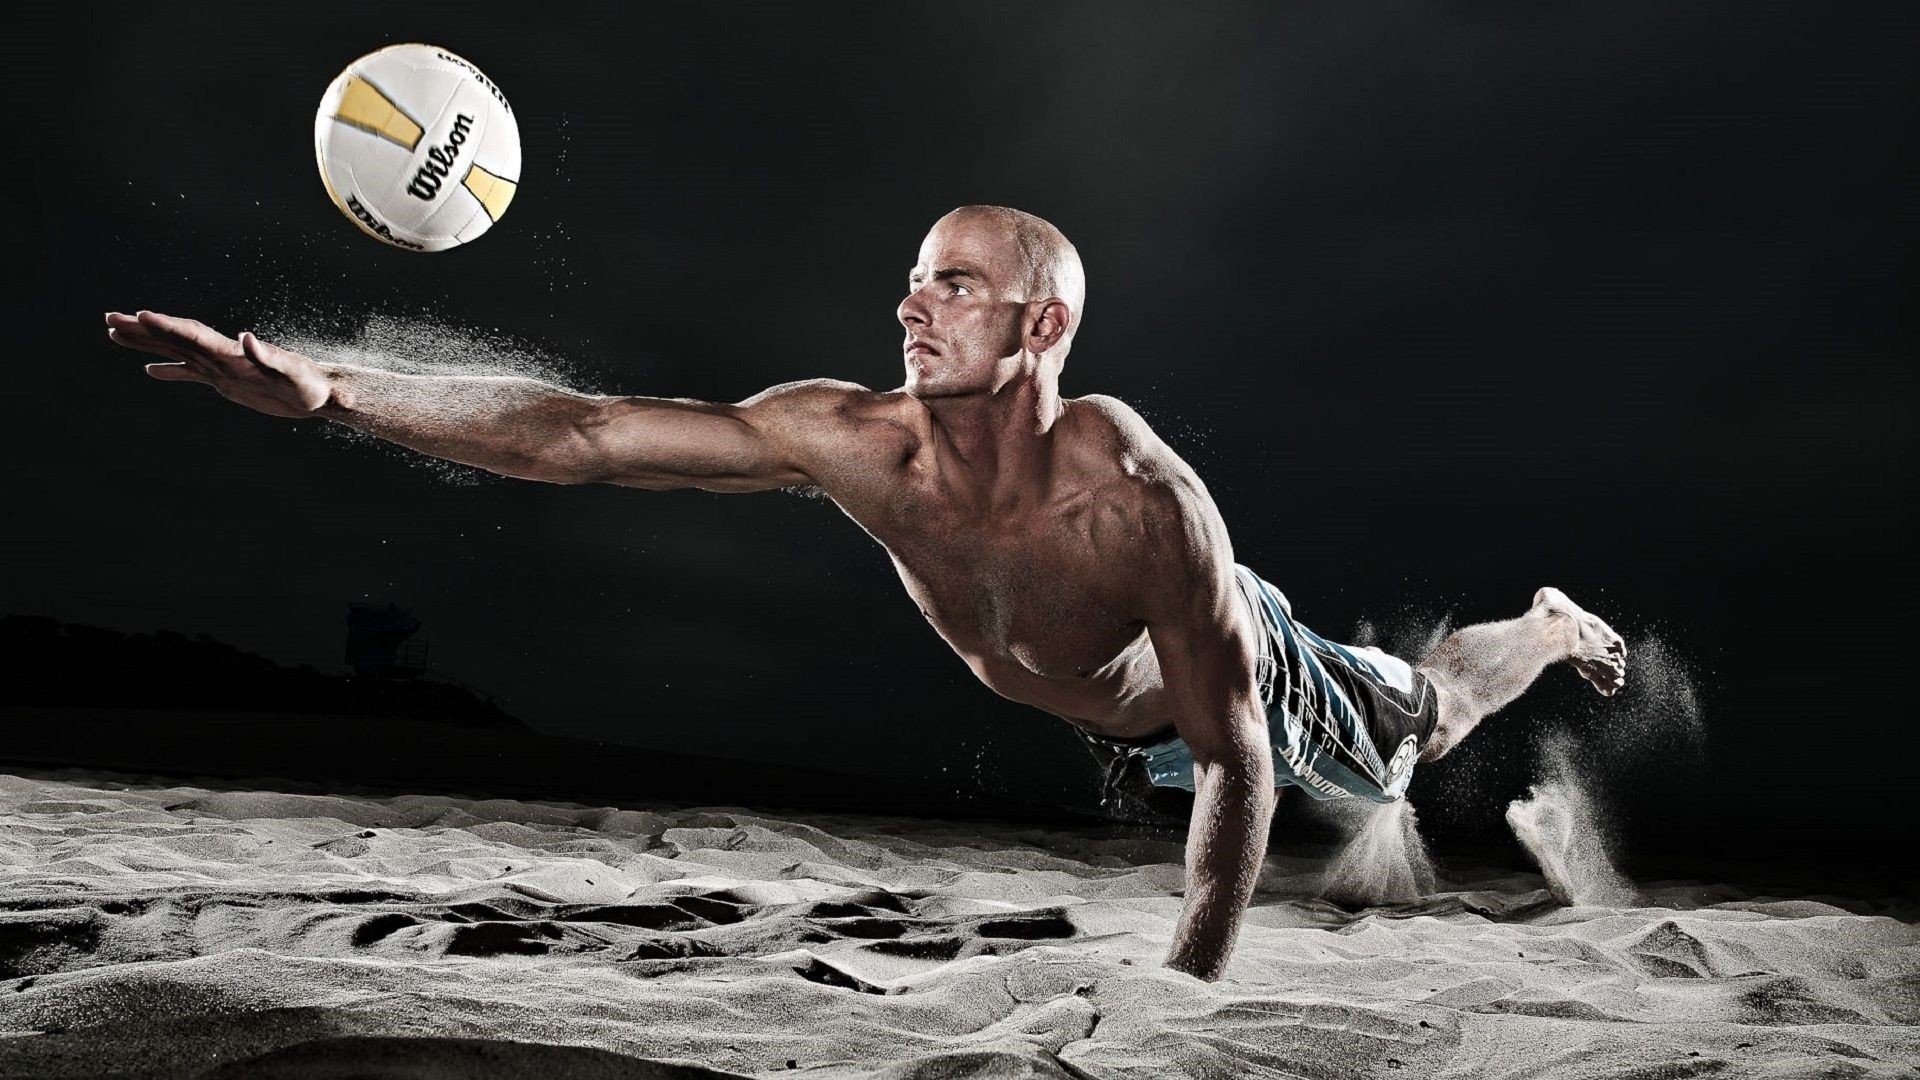 Volleyball High Quality